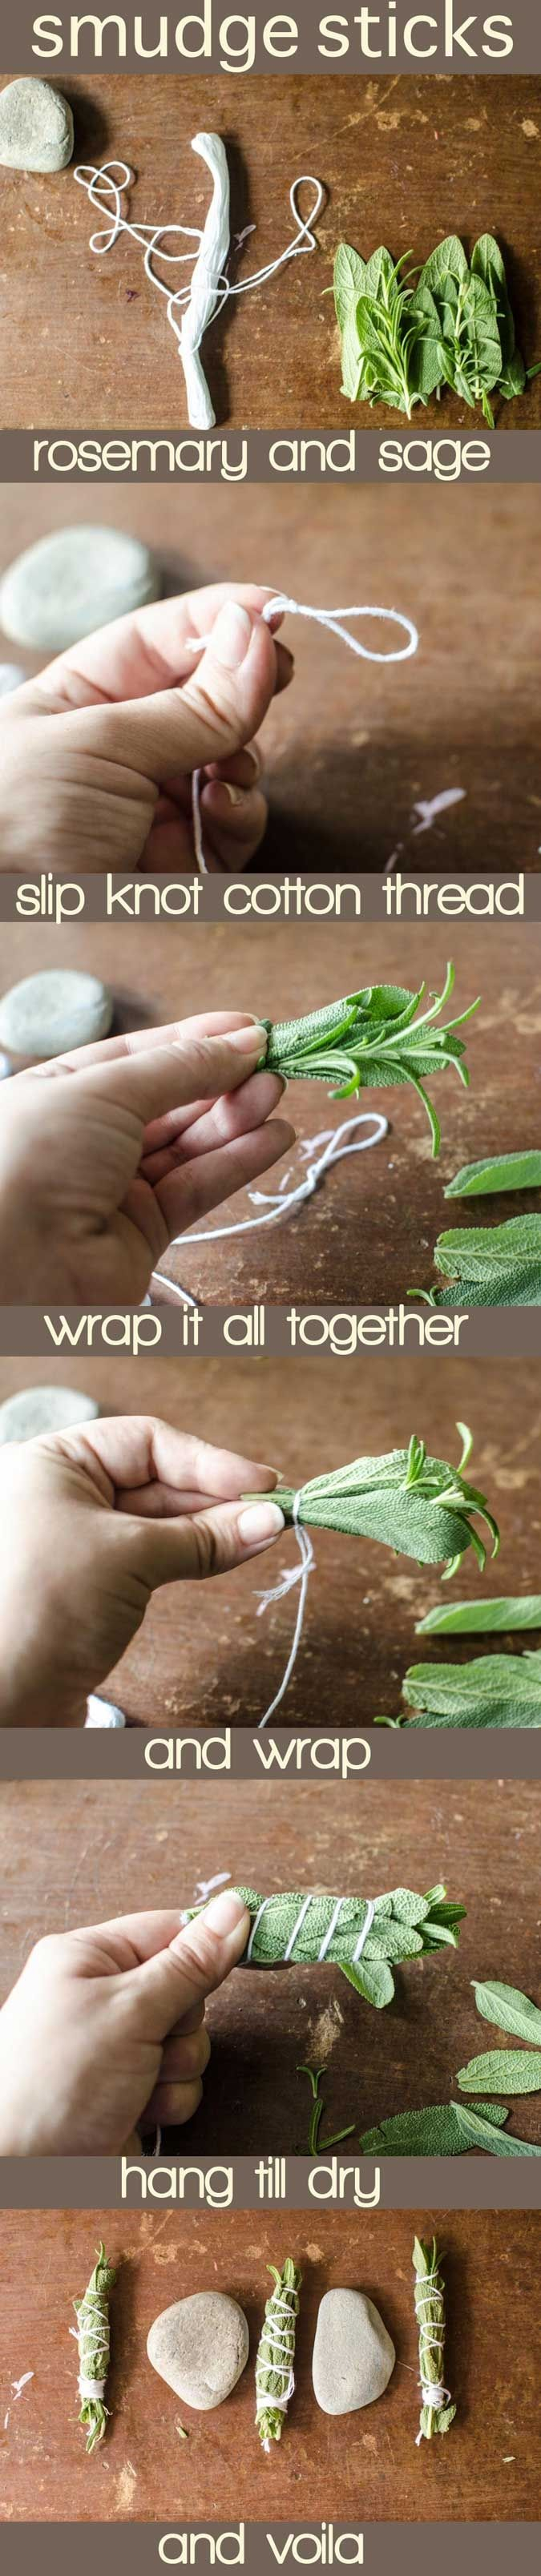 LITERALLY ordered Sage Rosemary Smudge Sticks and have no clue how to smudge! Perfect timing!